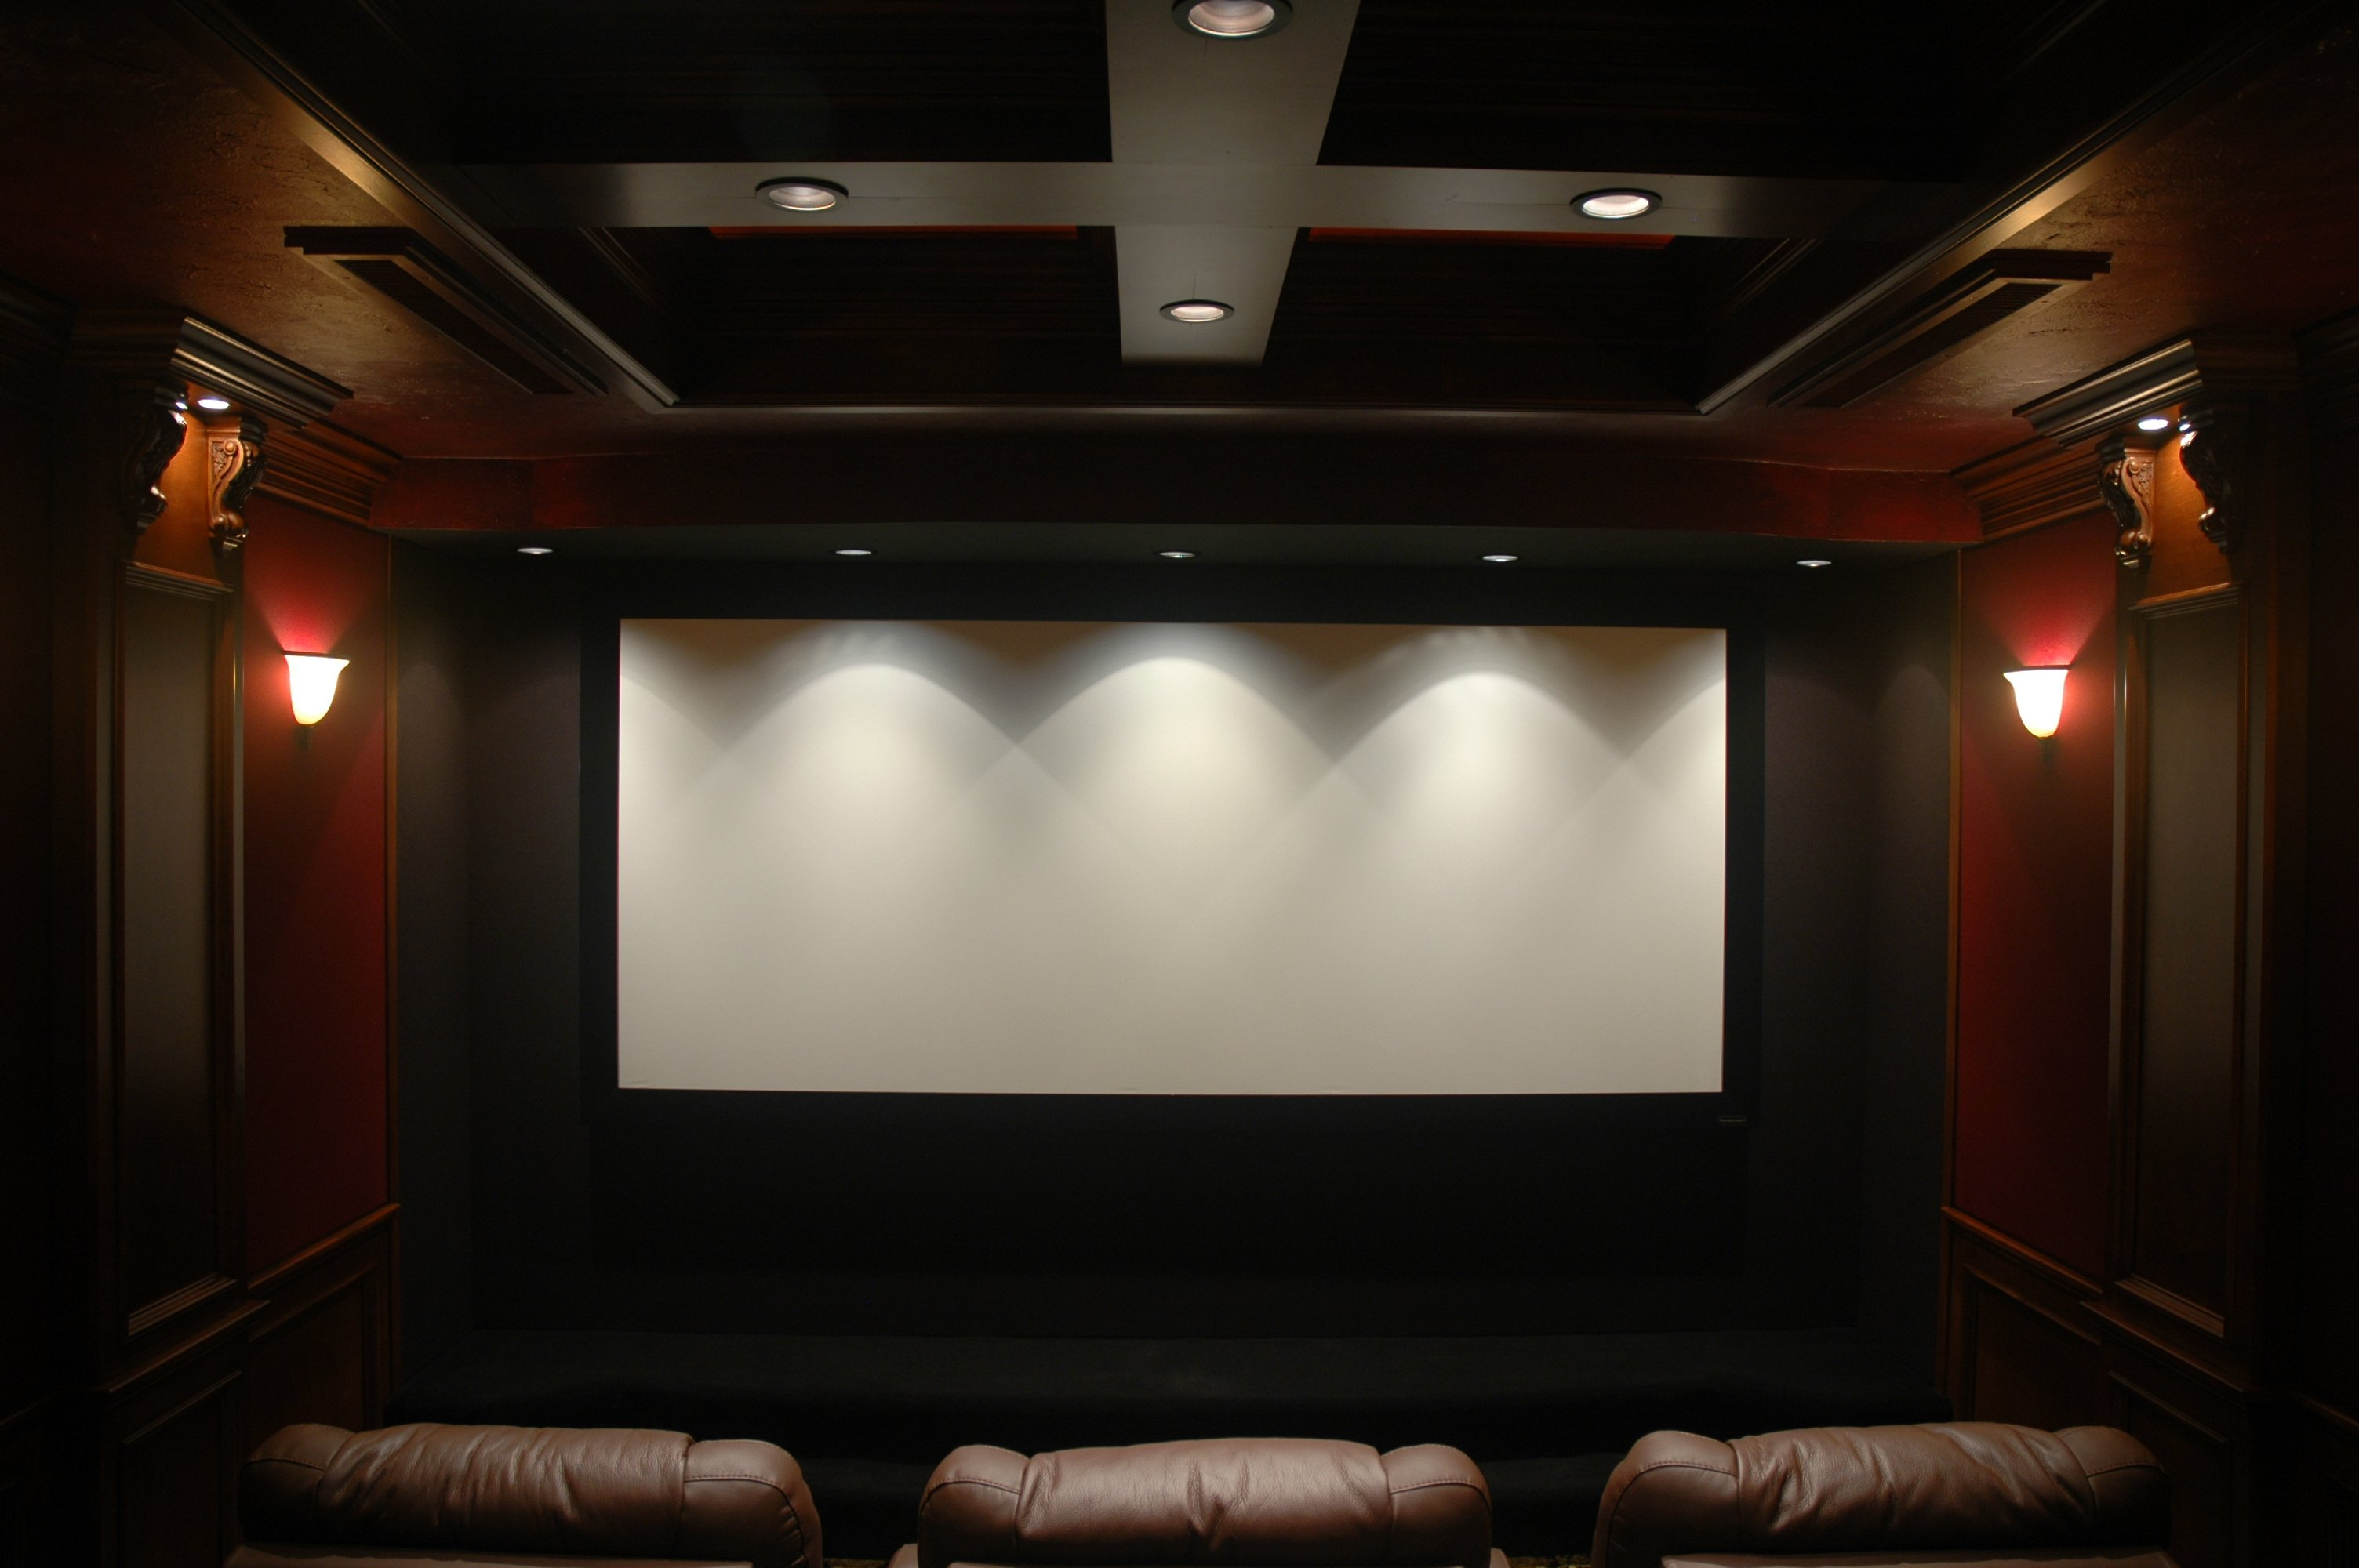 Show Us Your Screen Walls   Page 29   AVS Forum | Home Theater Discussions  And Reviews